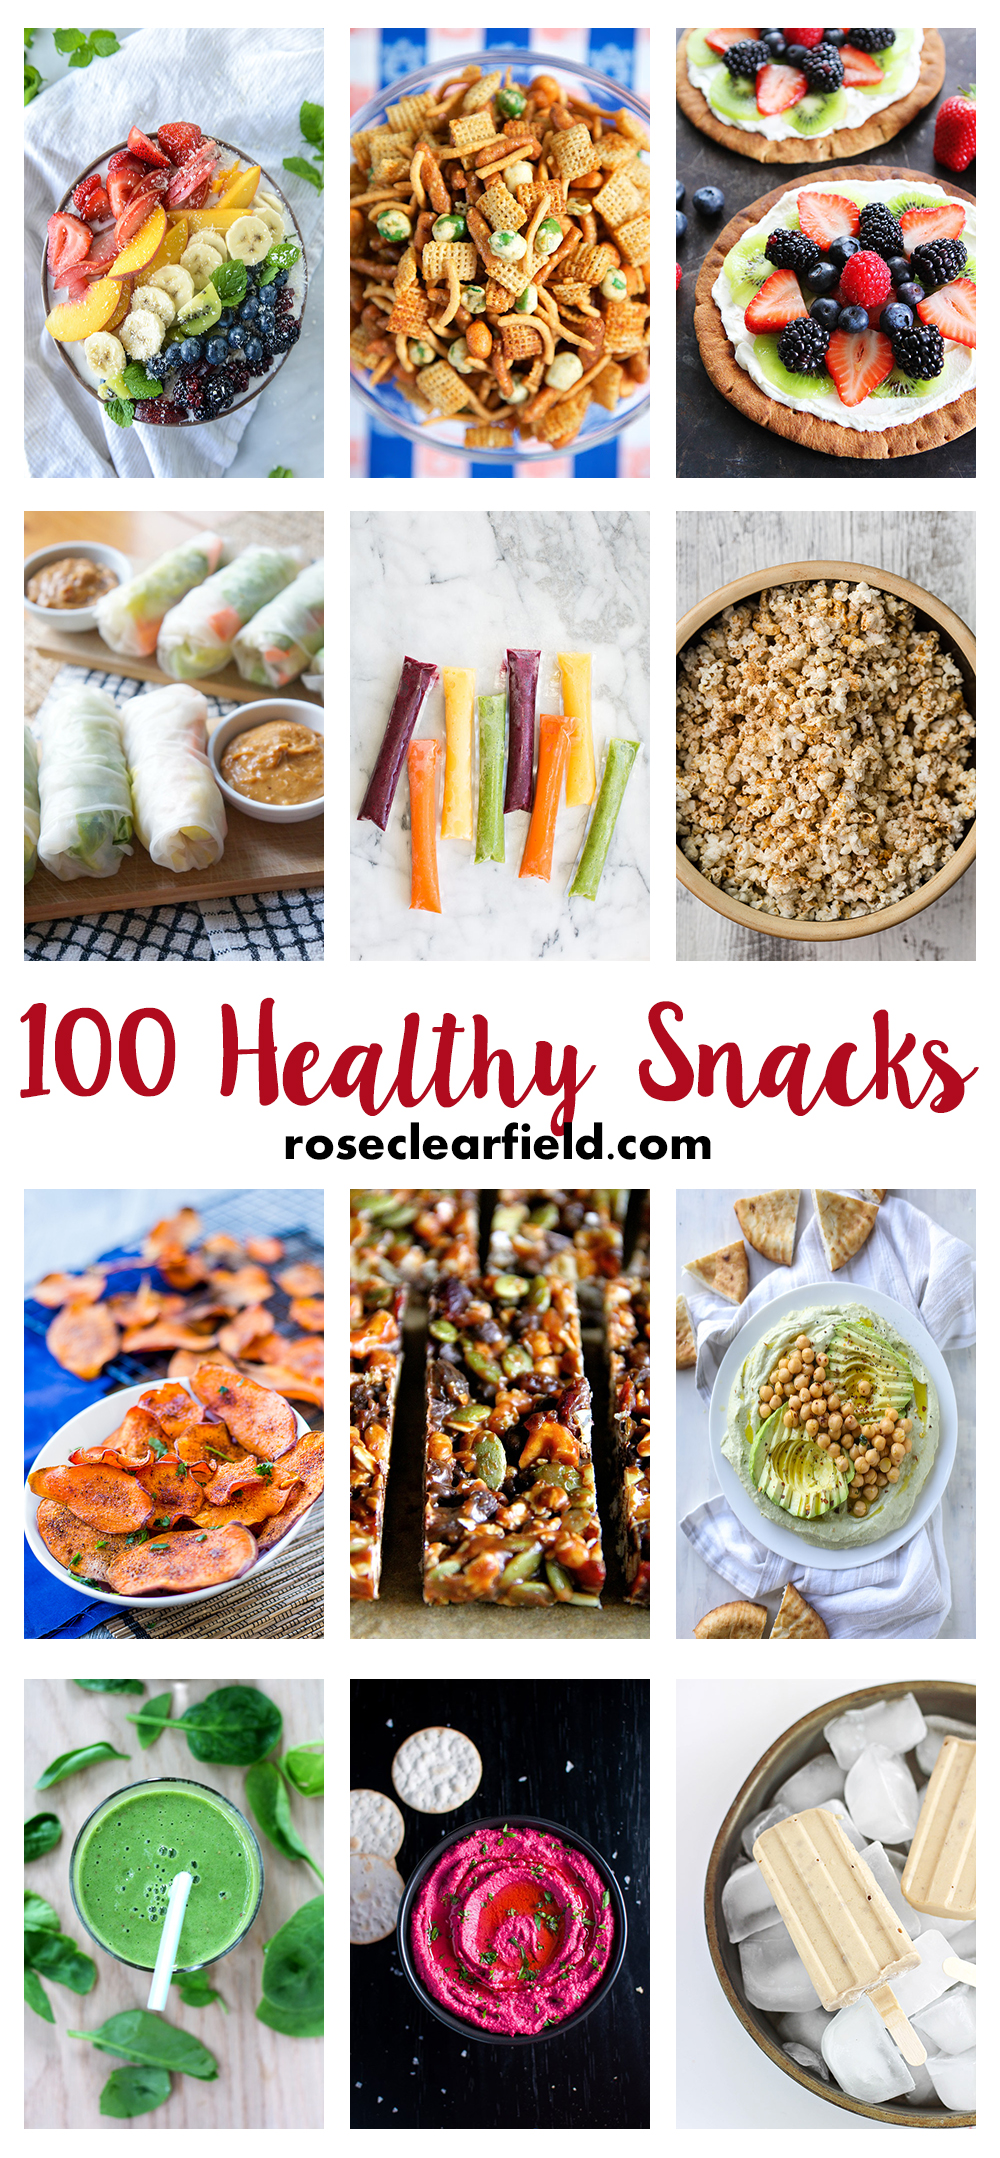 100 Healthy Snacks | http://www.roseclearfield.com